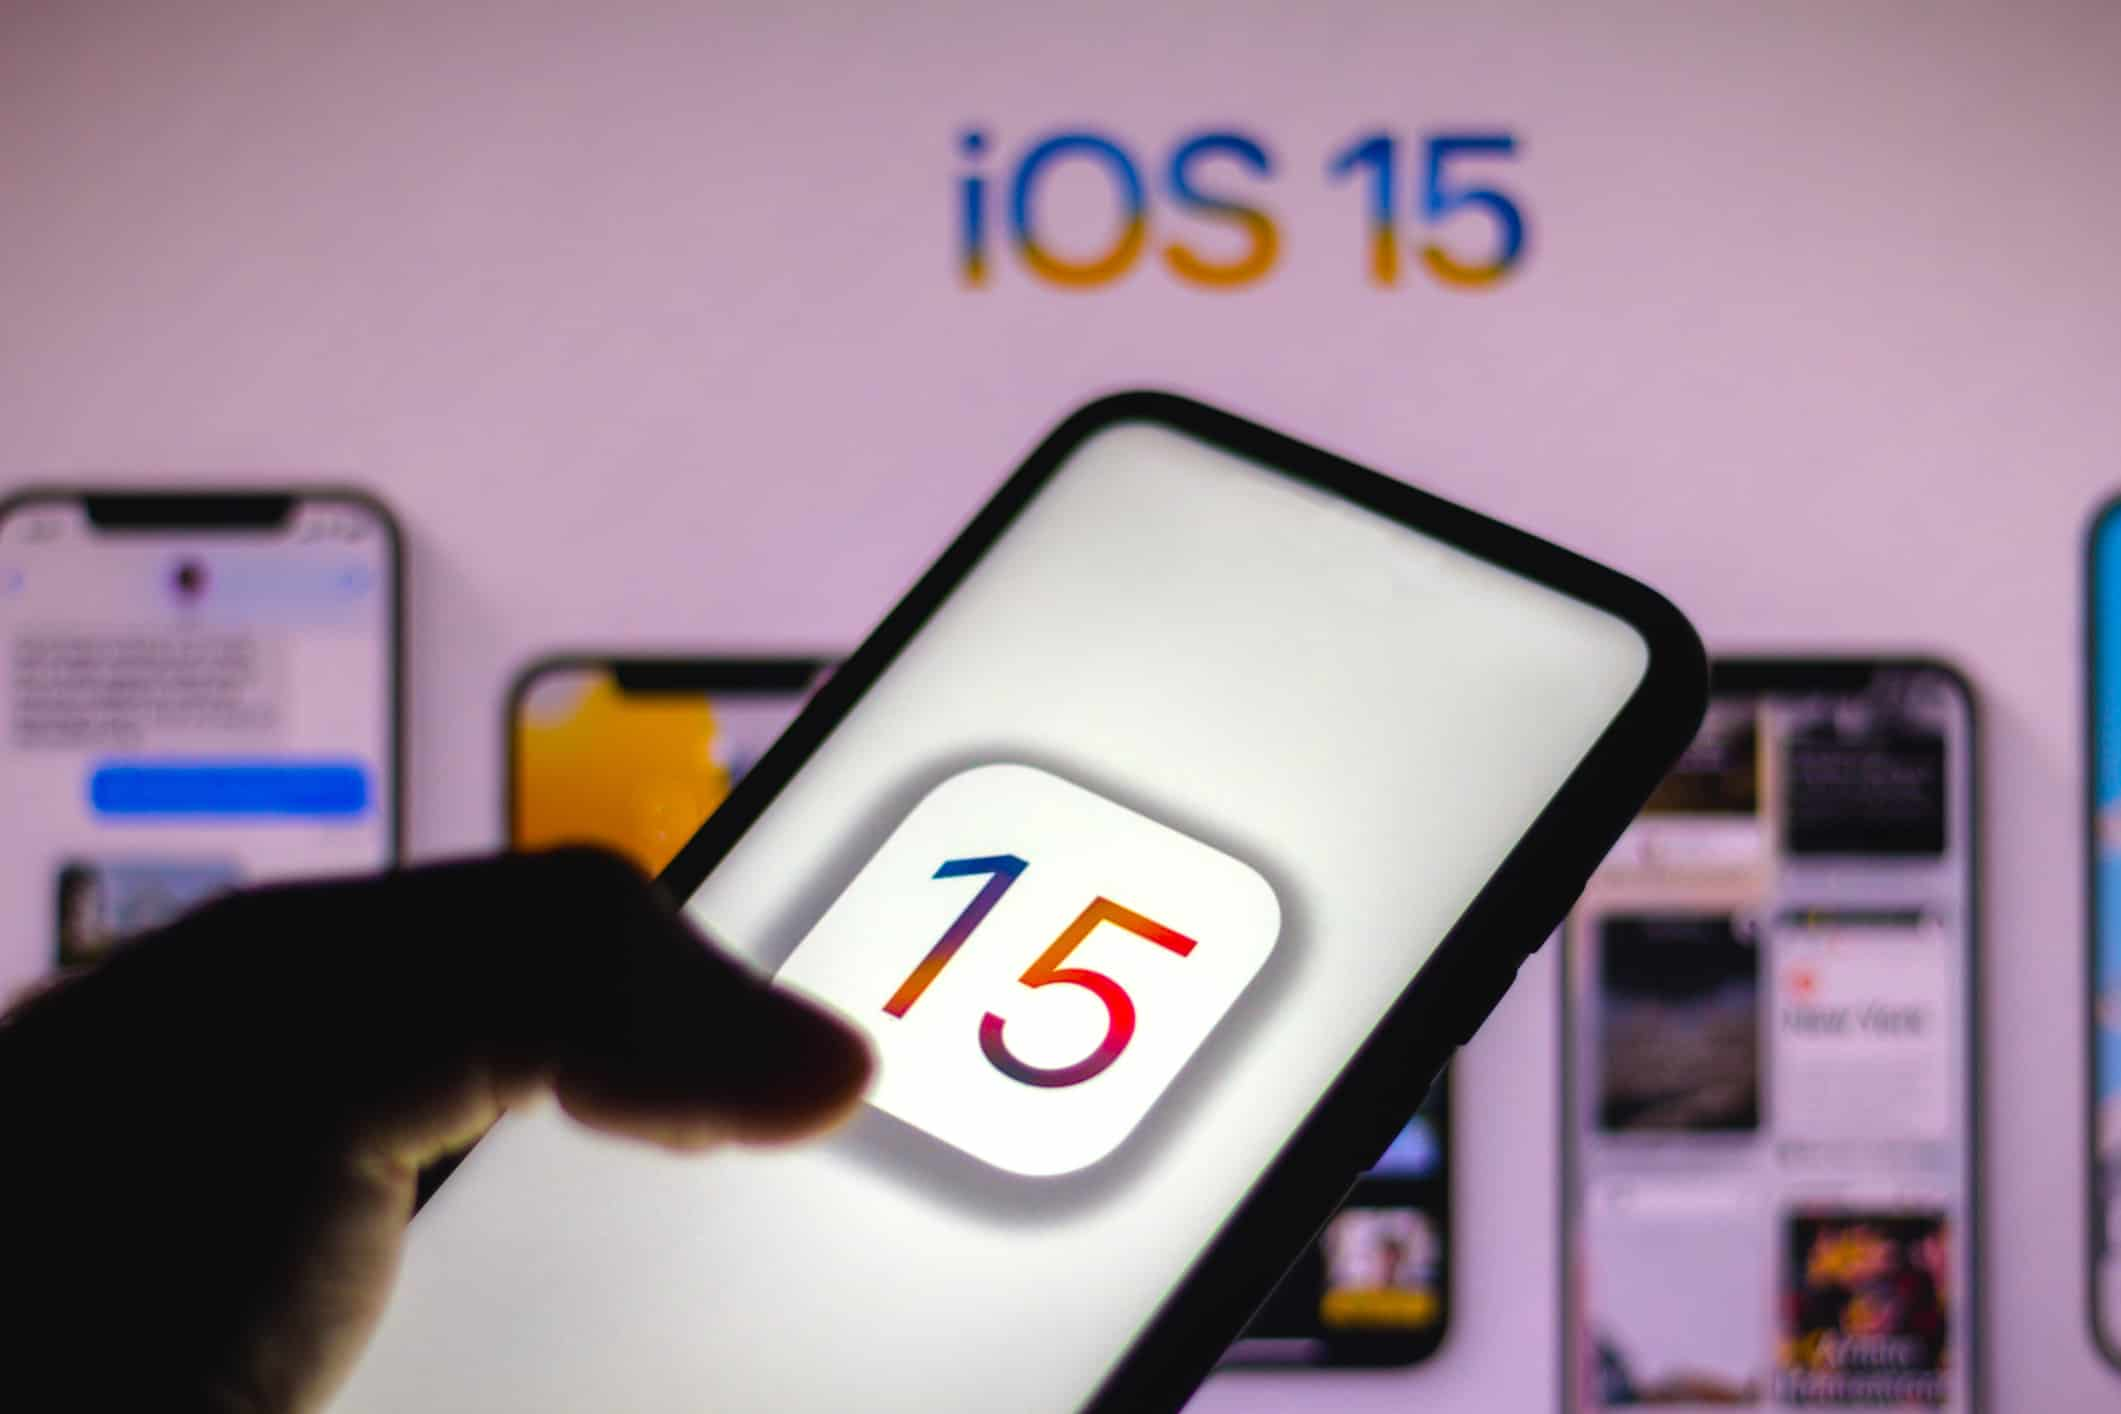 Apple has already released a new beta of iOS 15.1 and iPadOS 15.1